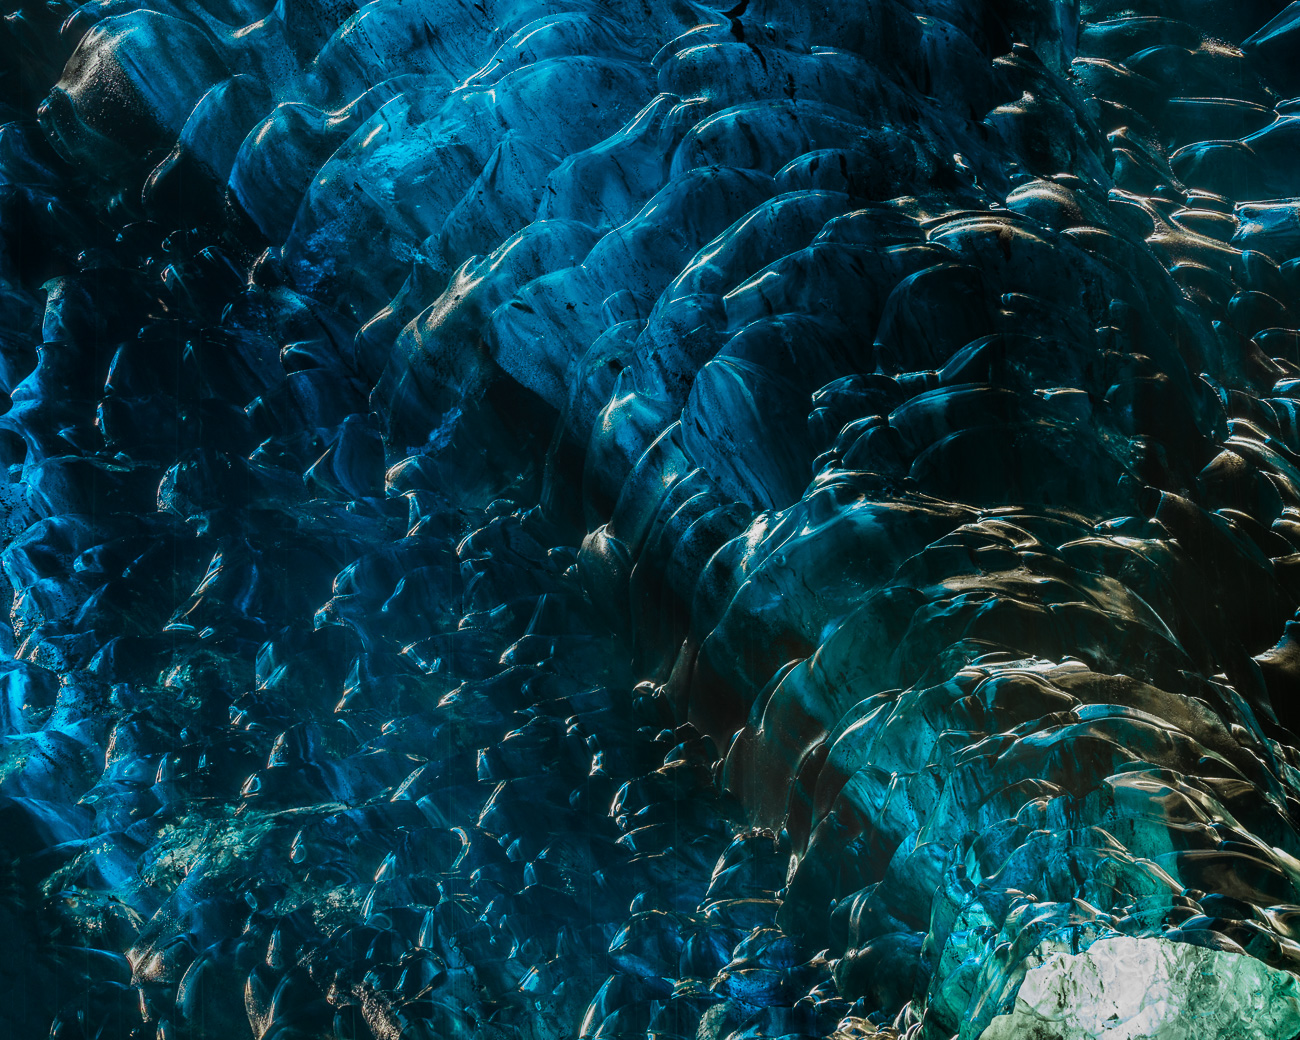 Stained Glass - Light streams through cyan ice that resembles stained glass in a massive ice cave under the Vatnajökull glacier